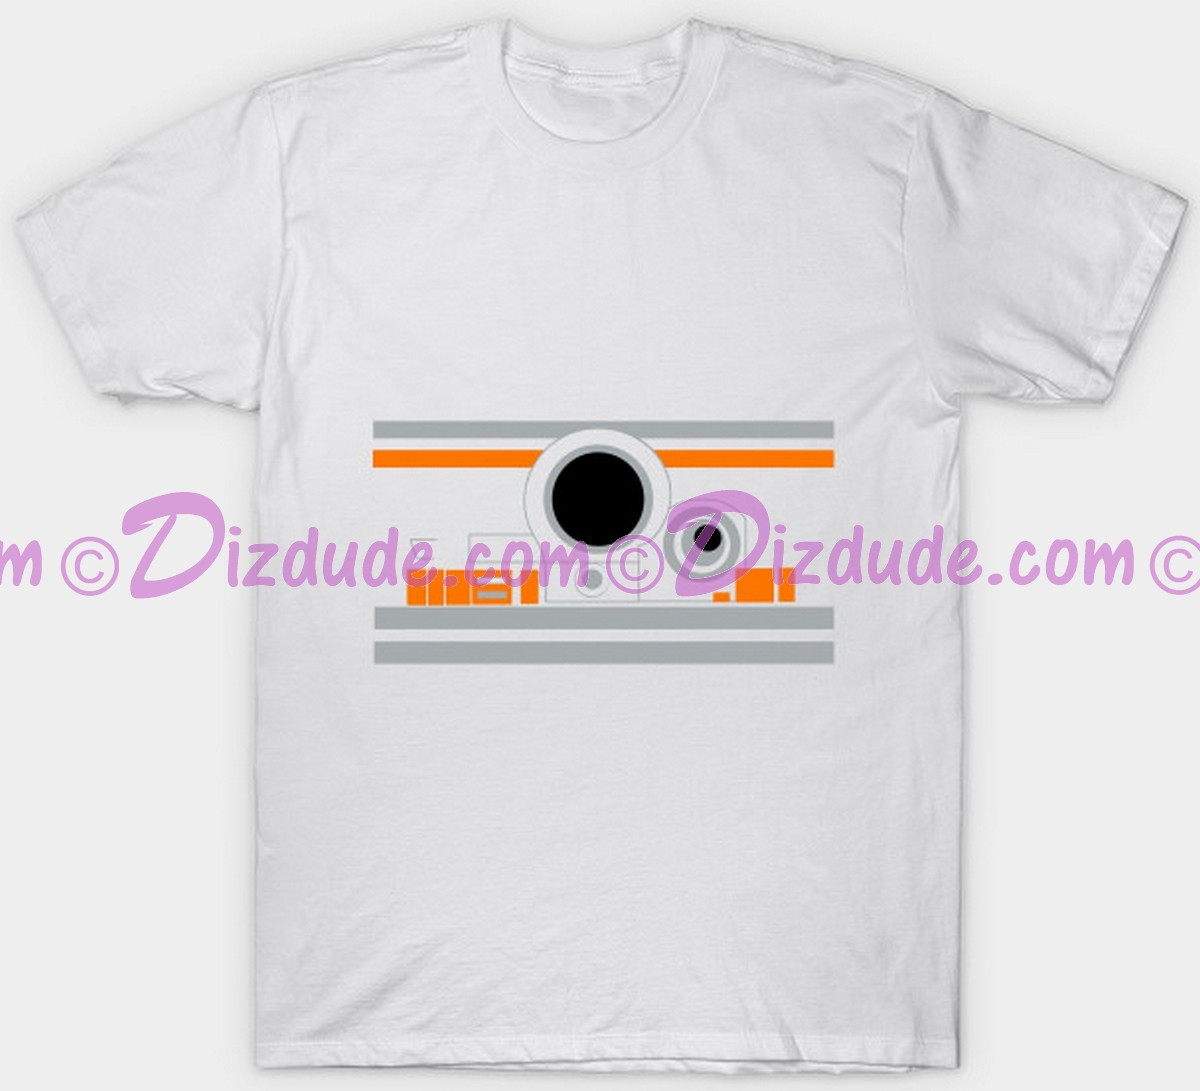 Star Wars Astromech Droid  BB-8 ~ Fantasy T-shirt (Tshirt, T shirt or Tee) © Dizdude.com